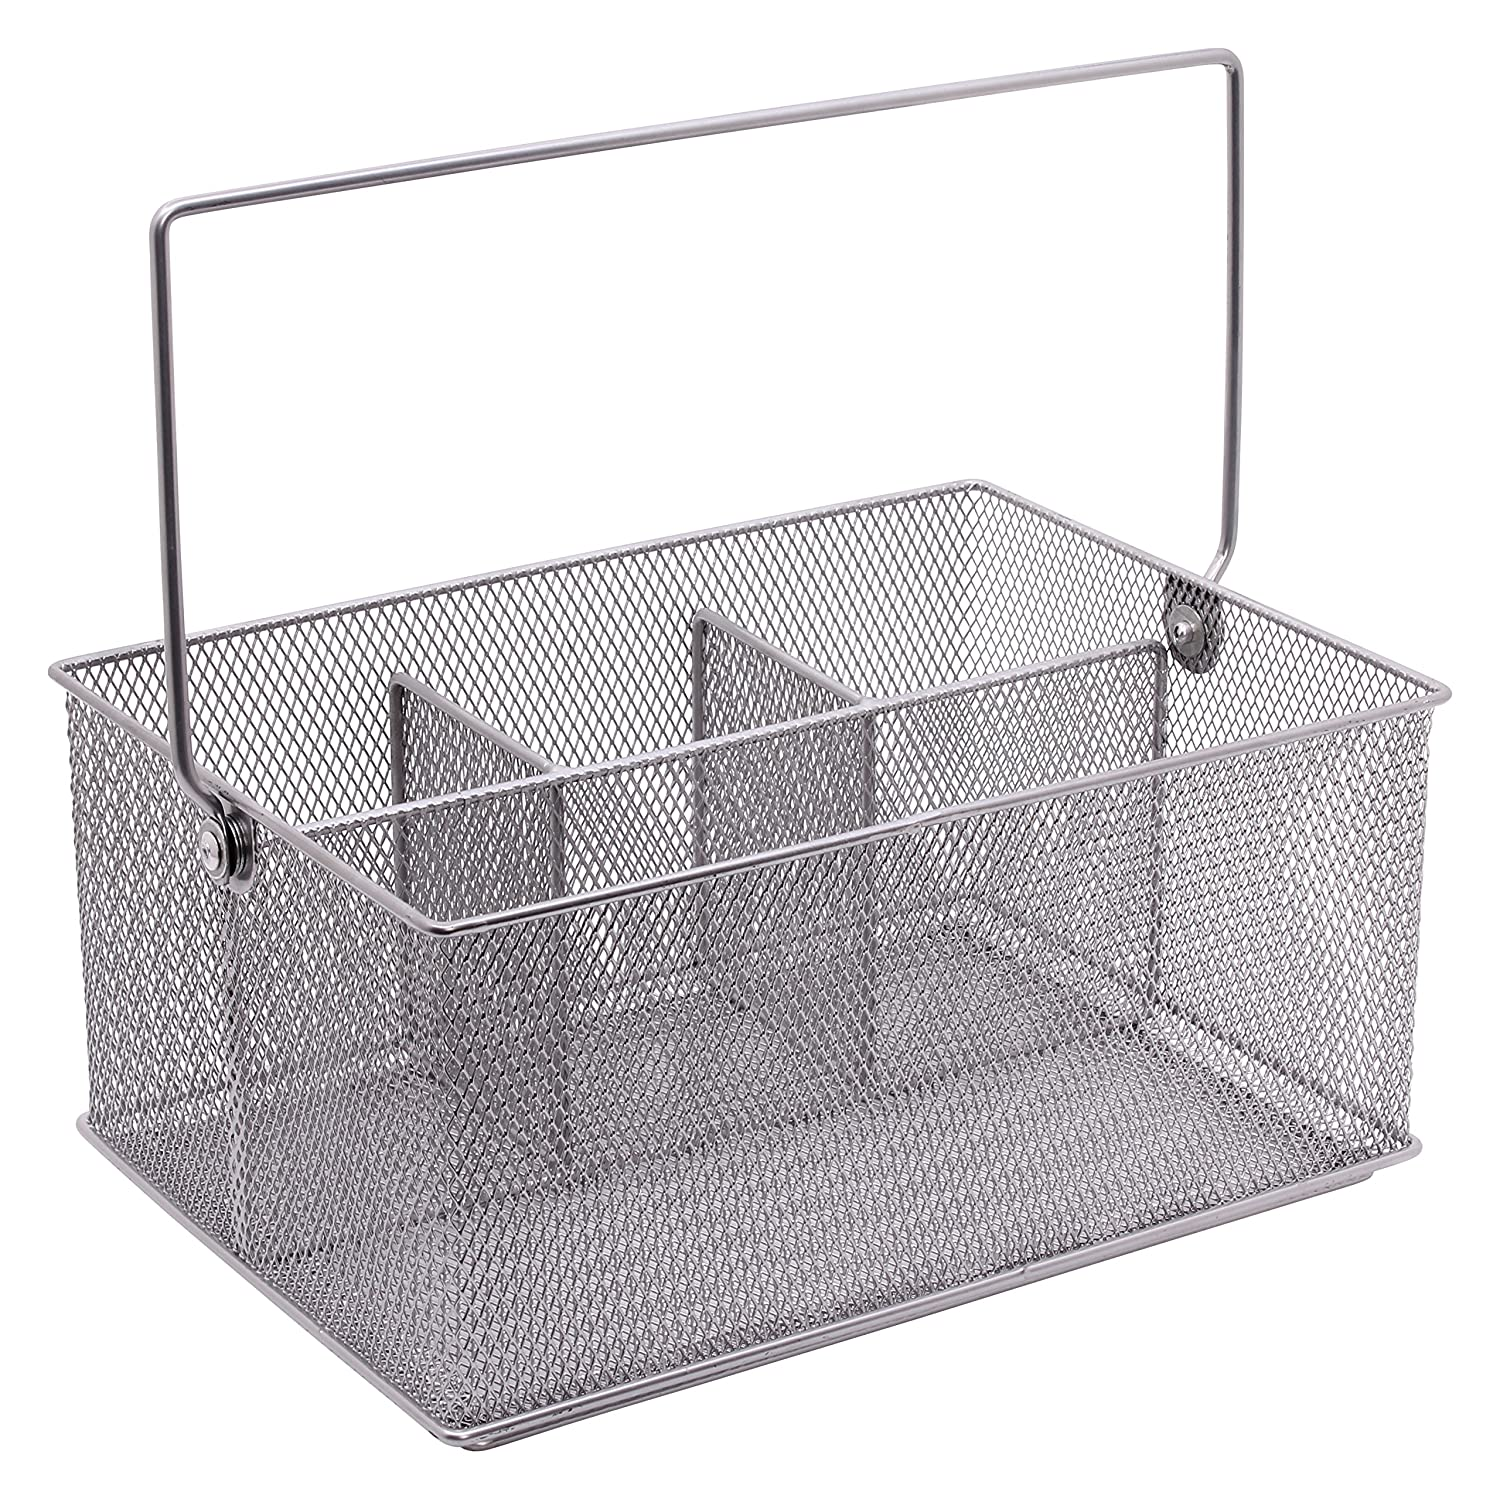 Design Ideas Condiment Caddy Mesh Silver 351729